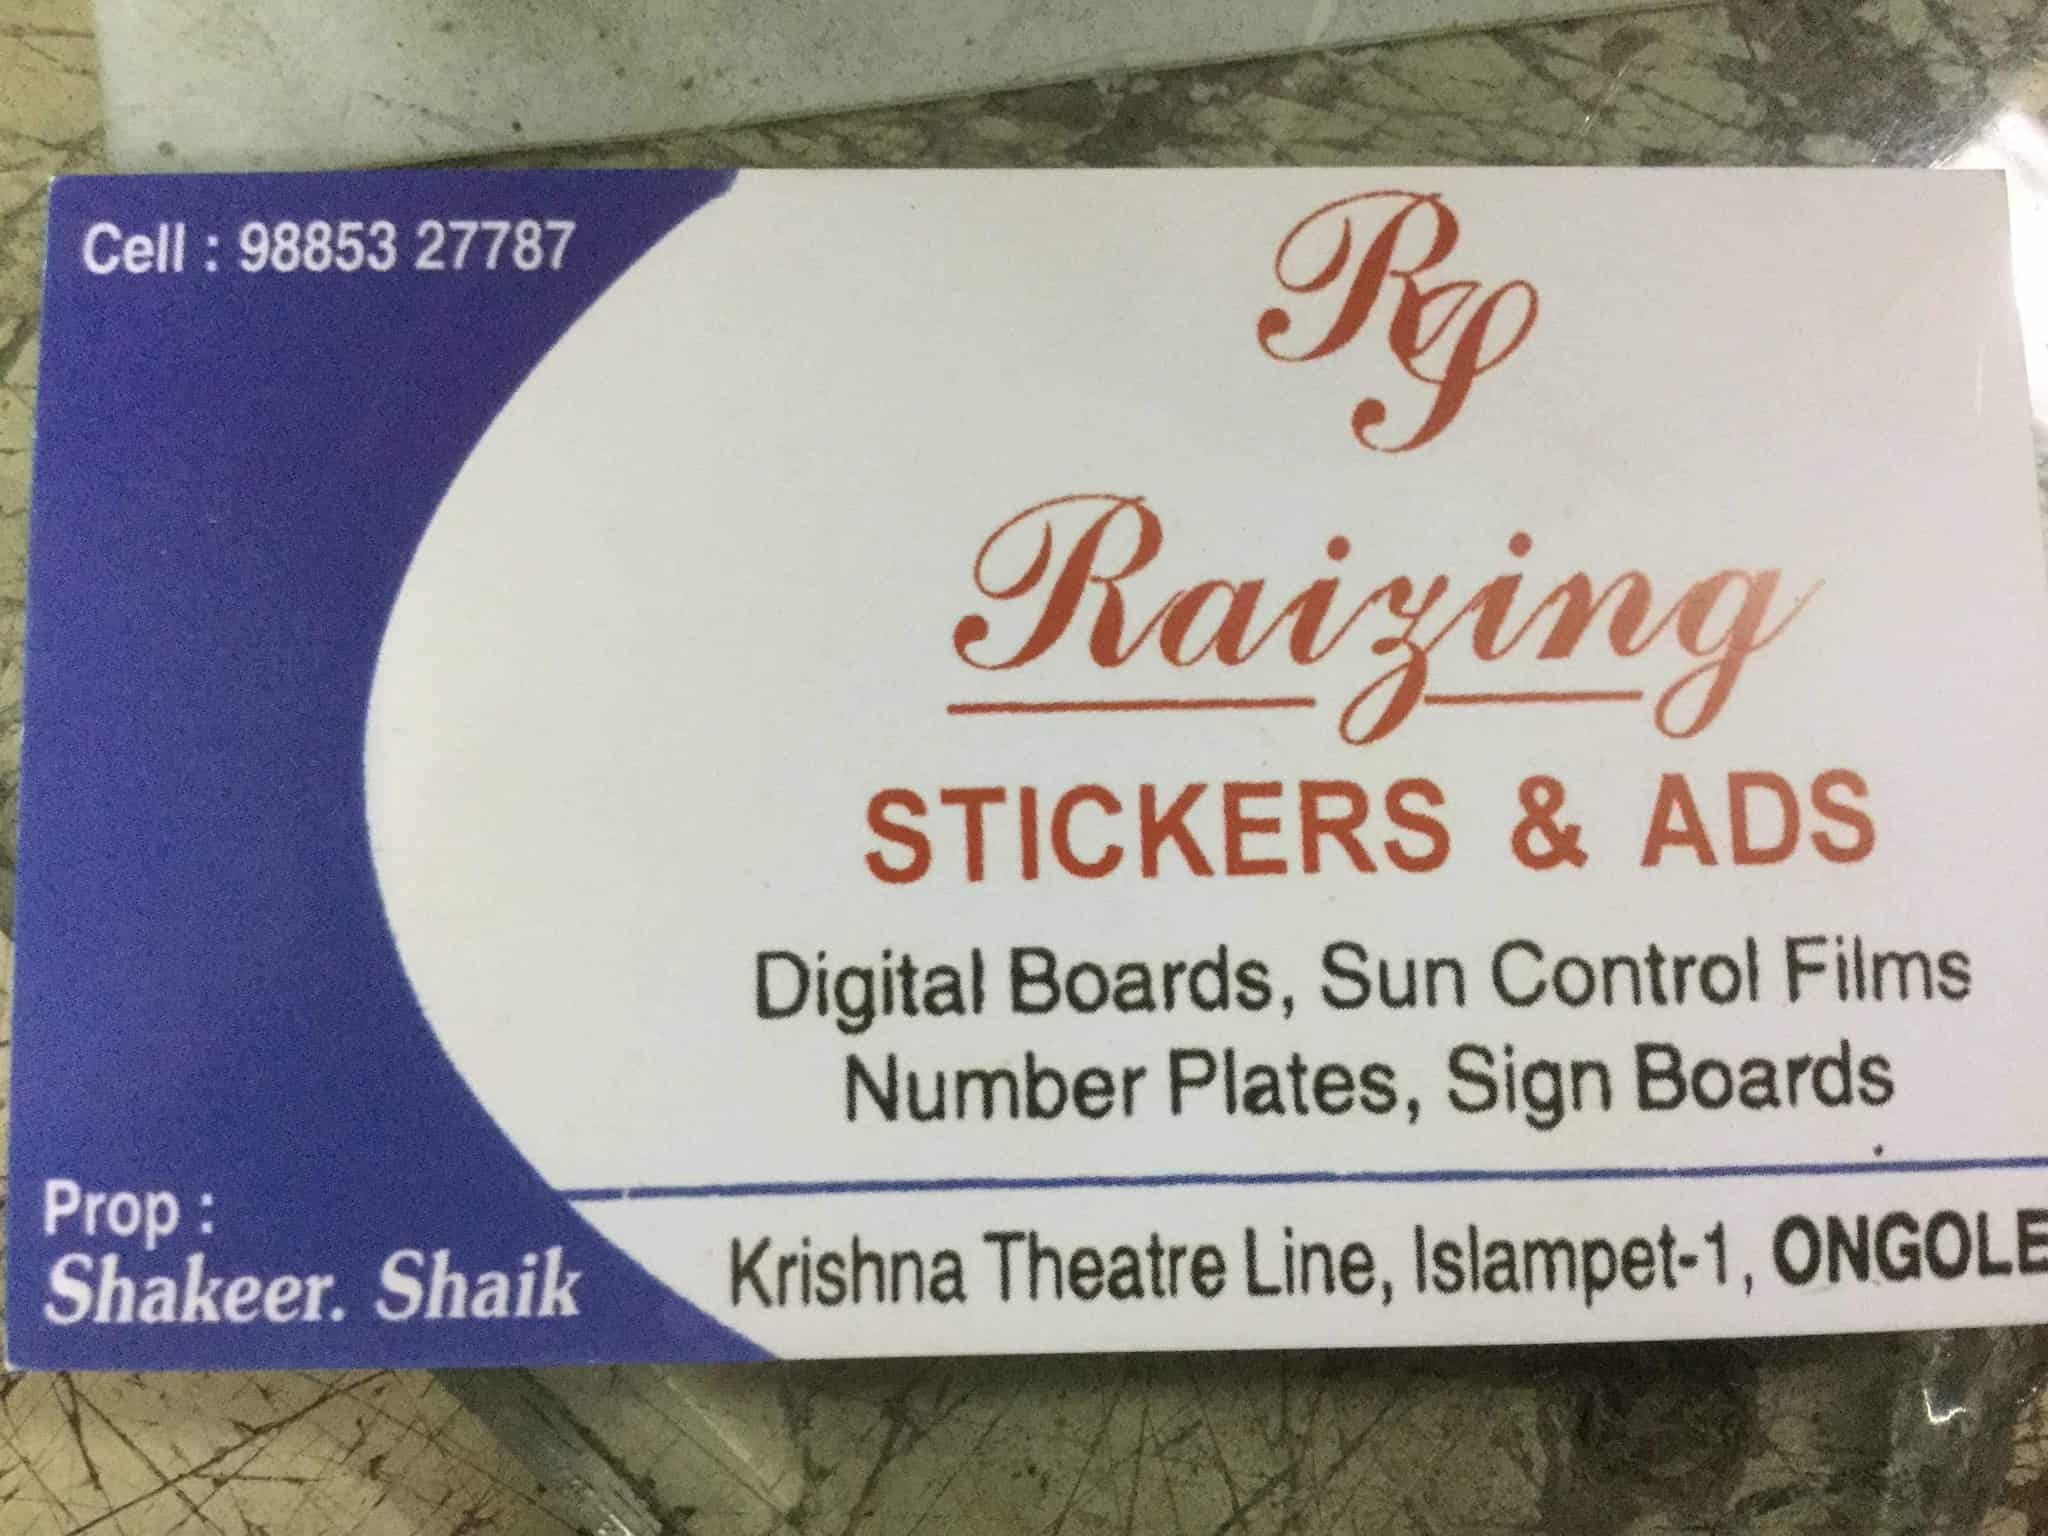 Raizing Stickers Ads Sticker Dealers In Ongole Justdial Circuit Board Designs Label